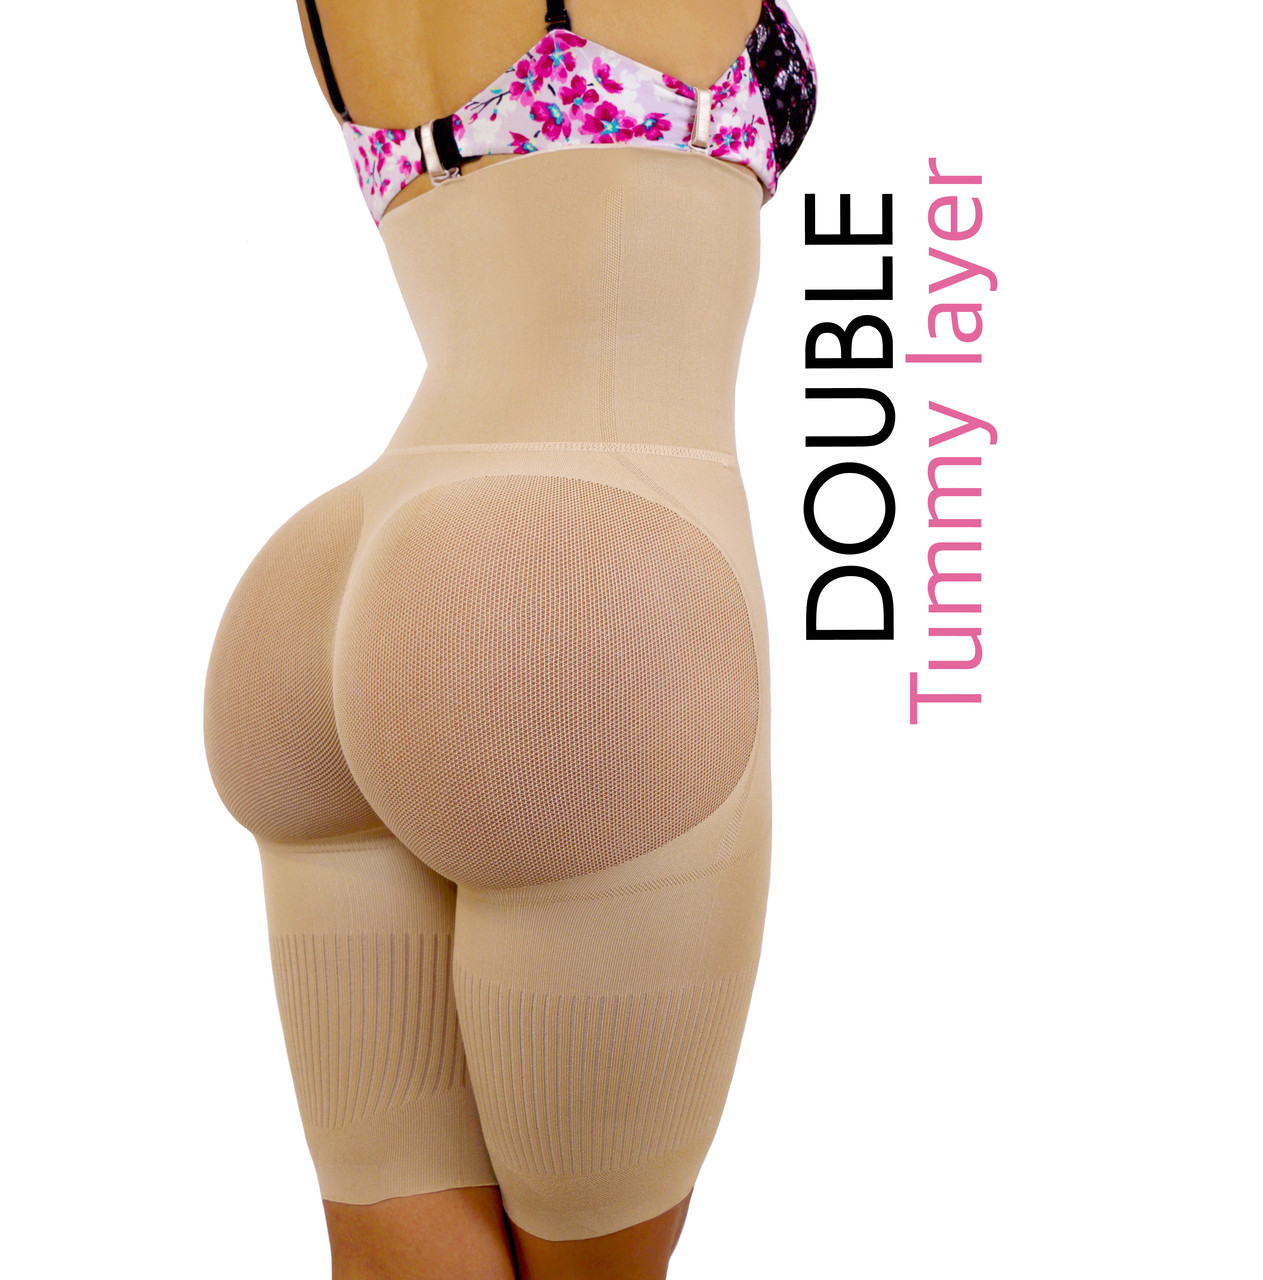 e262b1e25e Happy Butt N°7 Double Tummy Layer - YAHAIRA INC